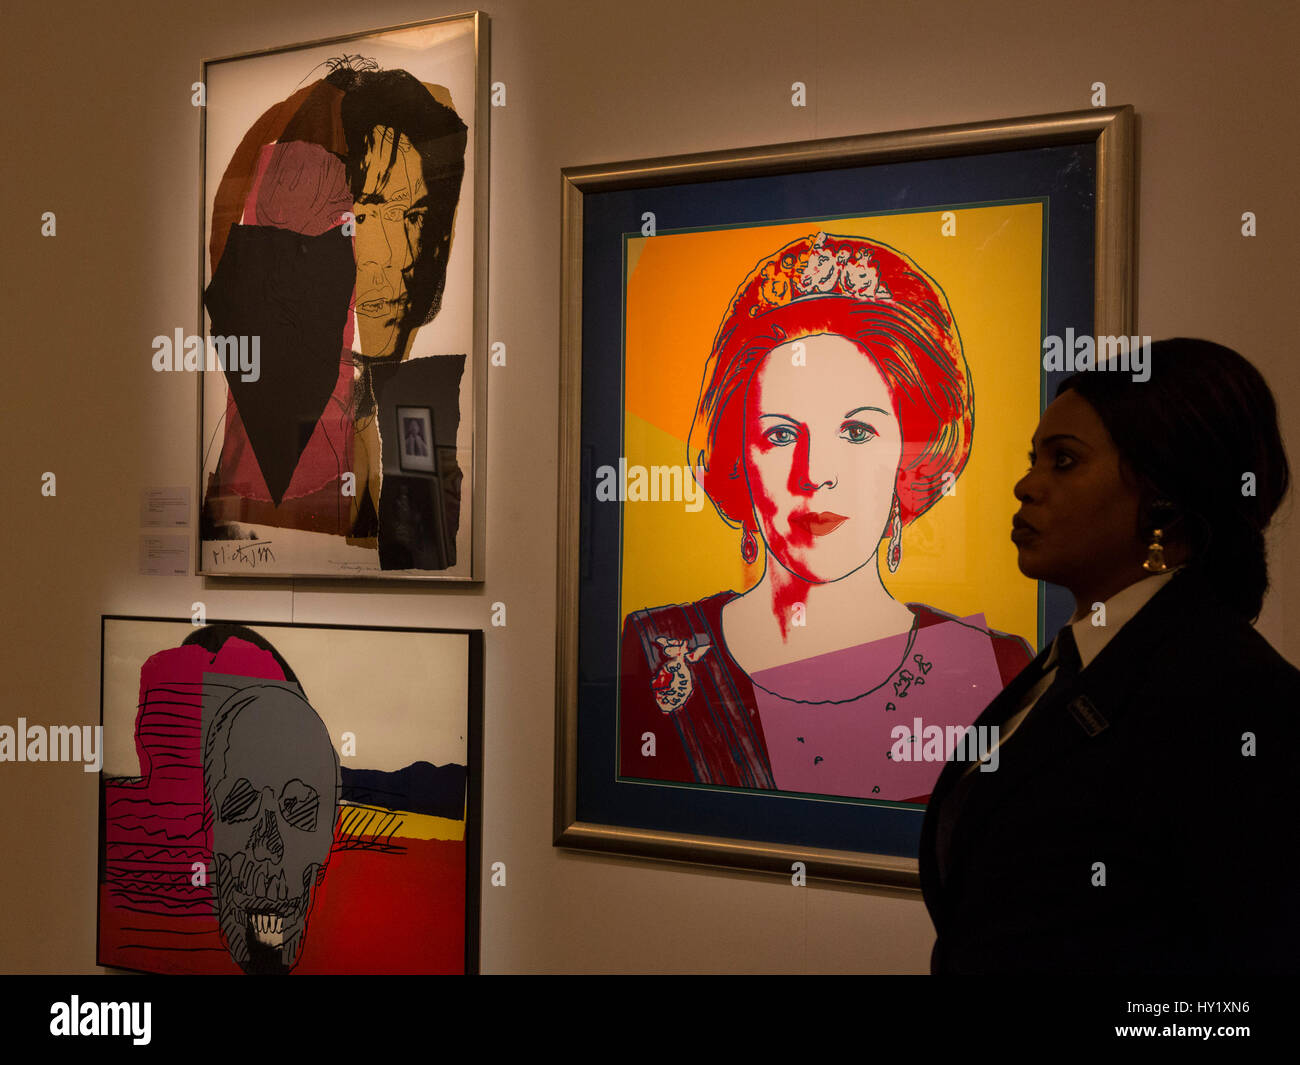 London, UK. 31 March 2017. Andy Warhol prints of Queen Beatrix, Mick Jagger and a Skull. Auction house Sotheby's - Stock Image